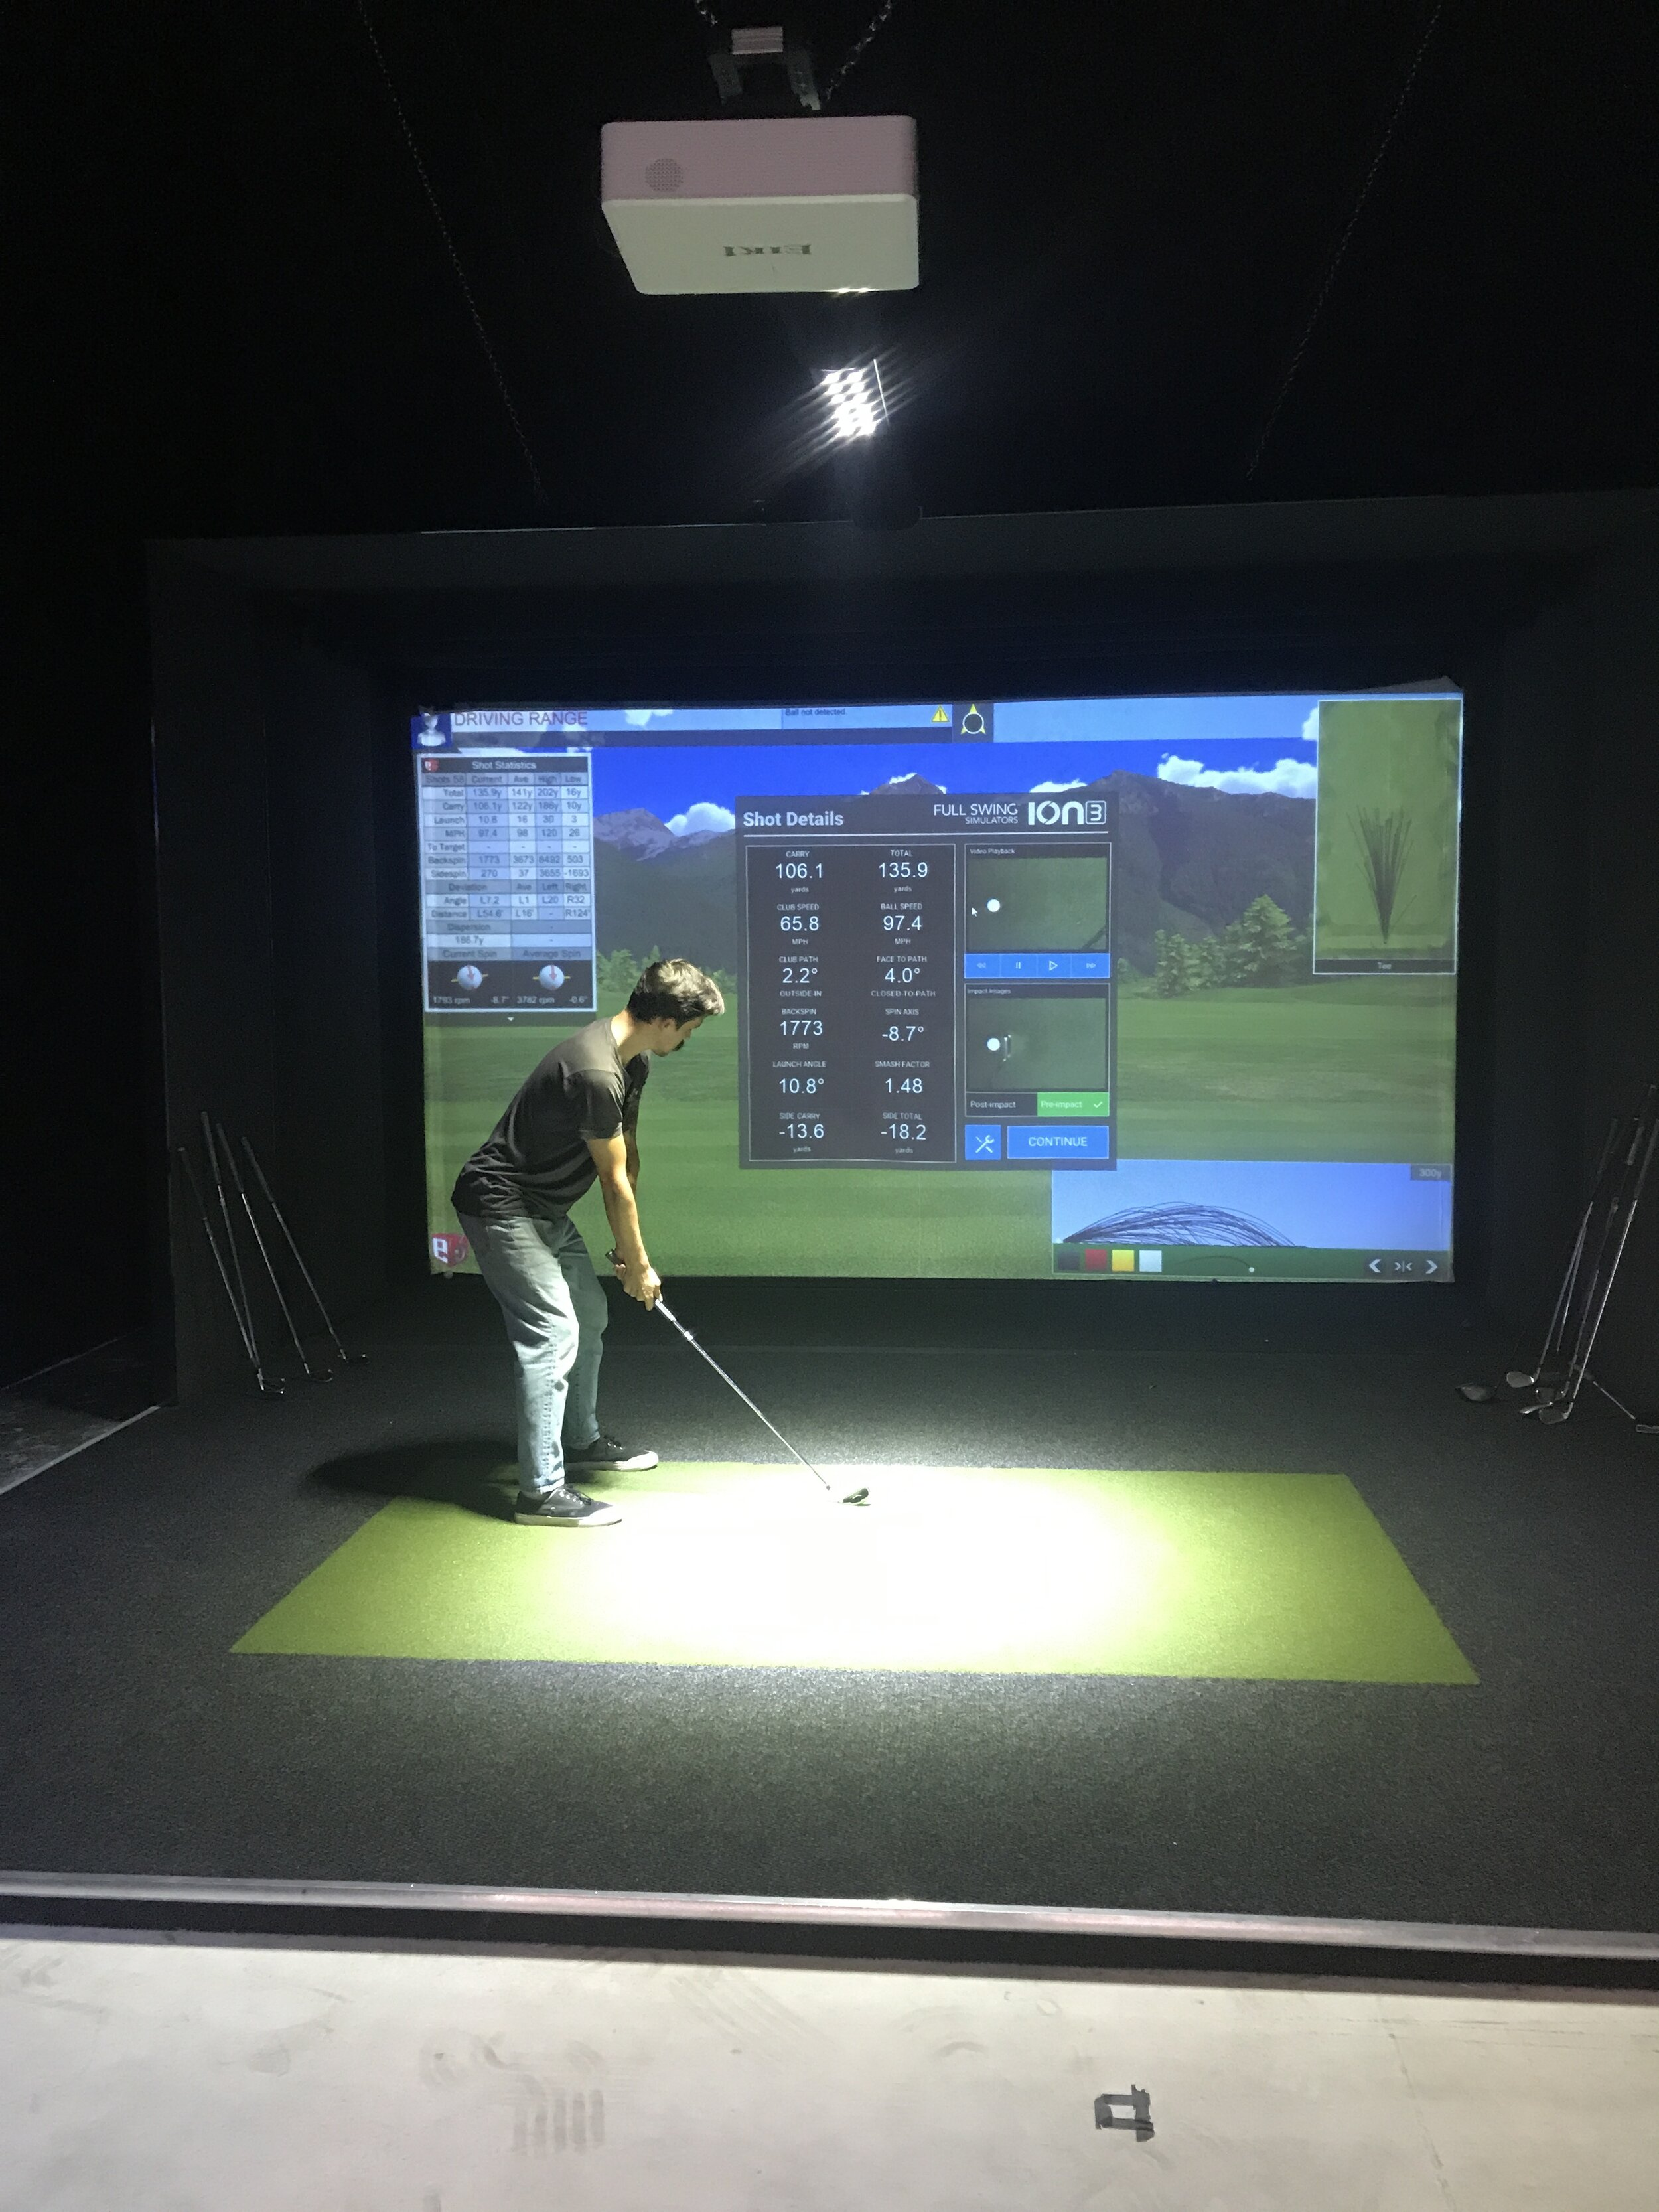 The potential to play Oakmont on your lunch break was too much for me to resist. I am looking forward to simulator Fridays on Instagram.